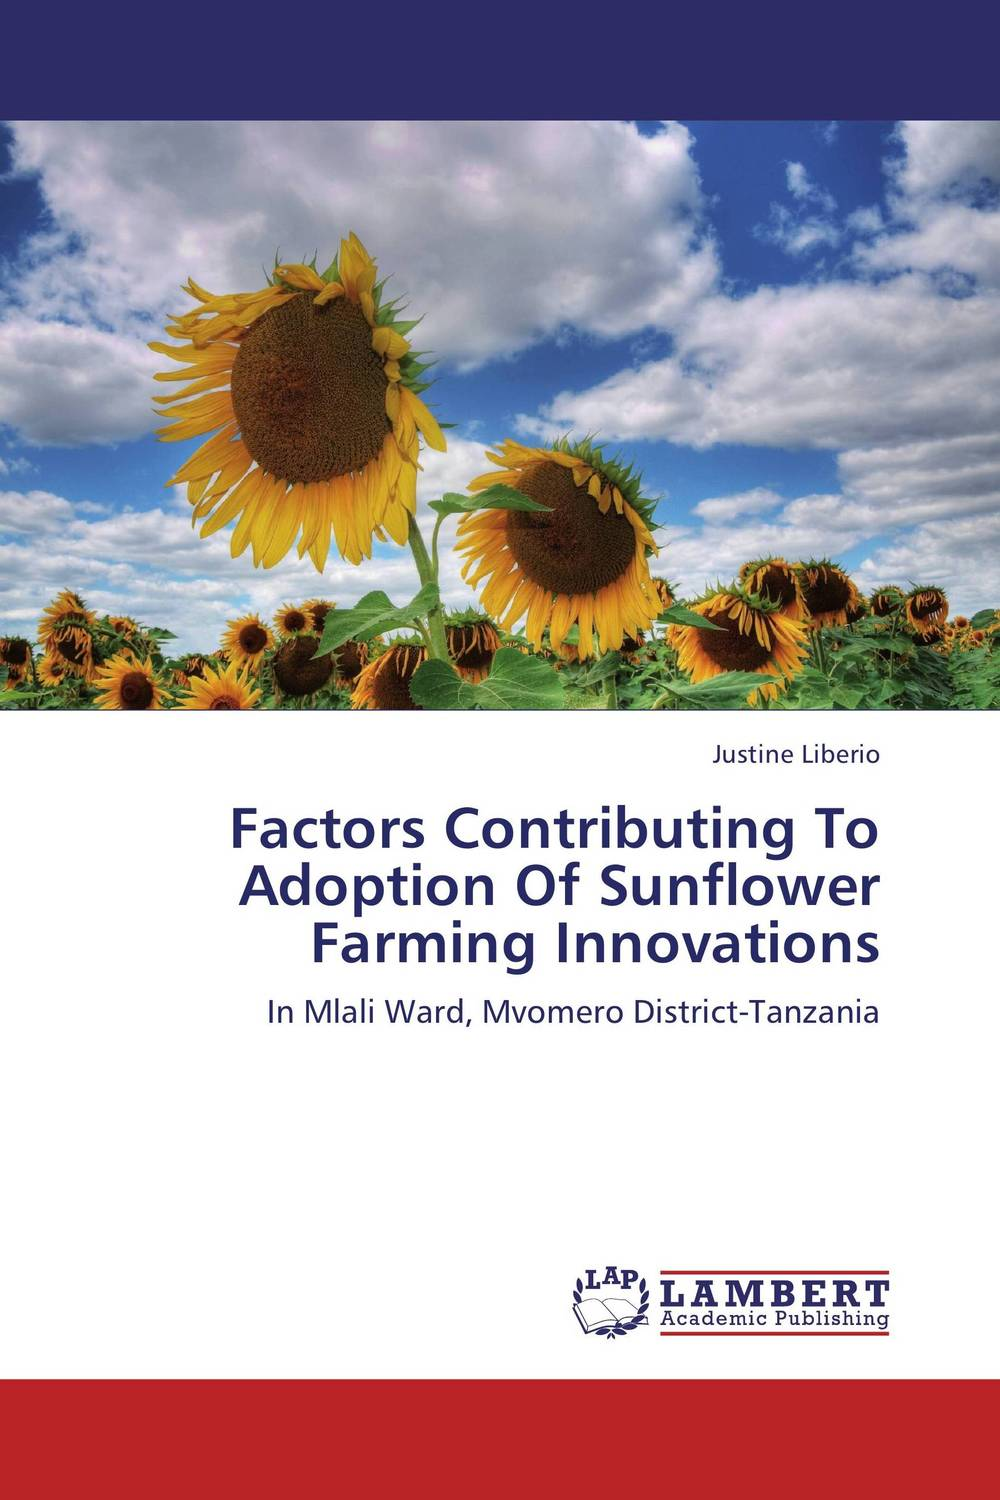 Factors Contributing To Adoption Of Sunflower Farming Innovations farm level adoption of water system innovations in semi arid areas